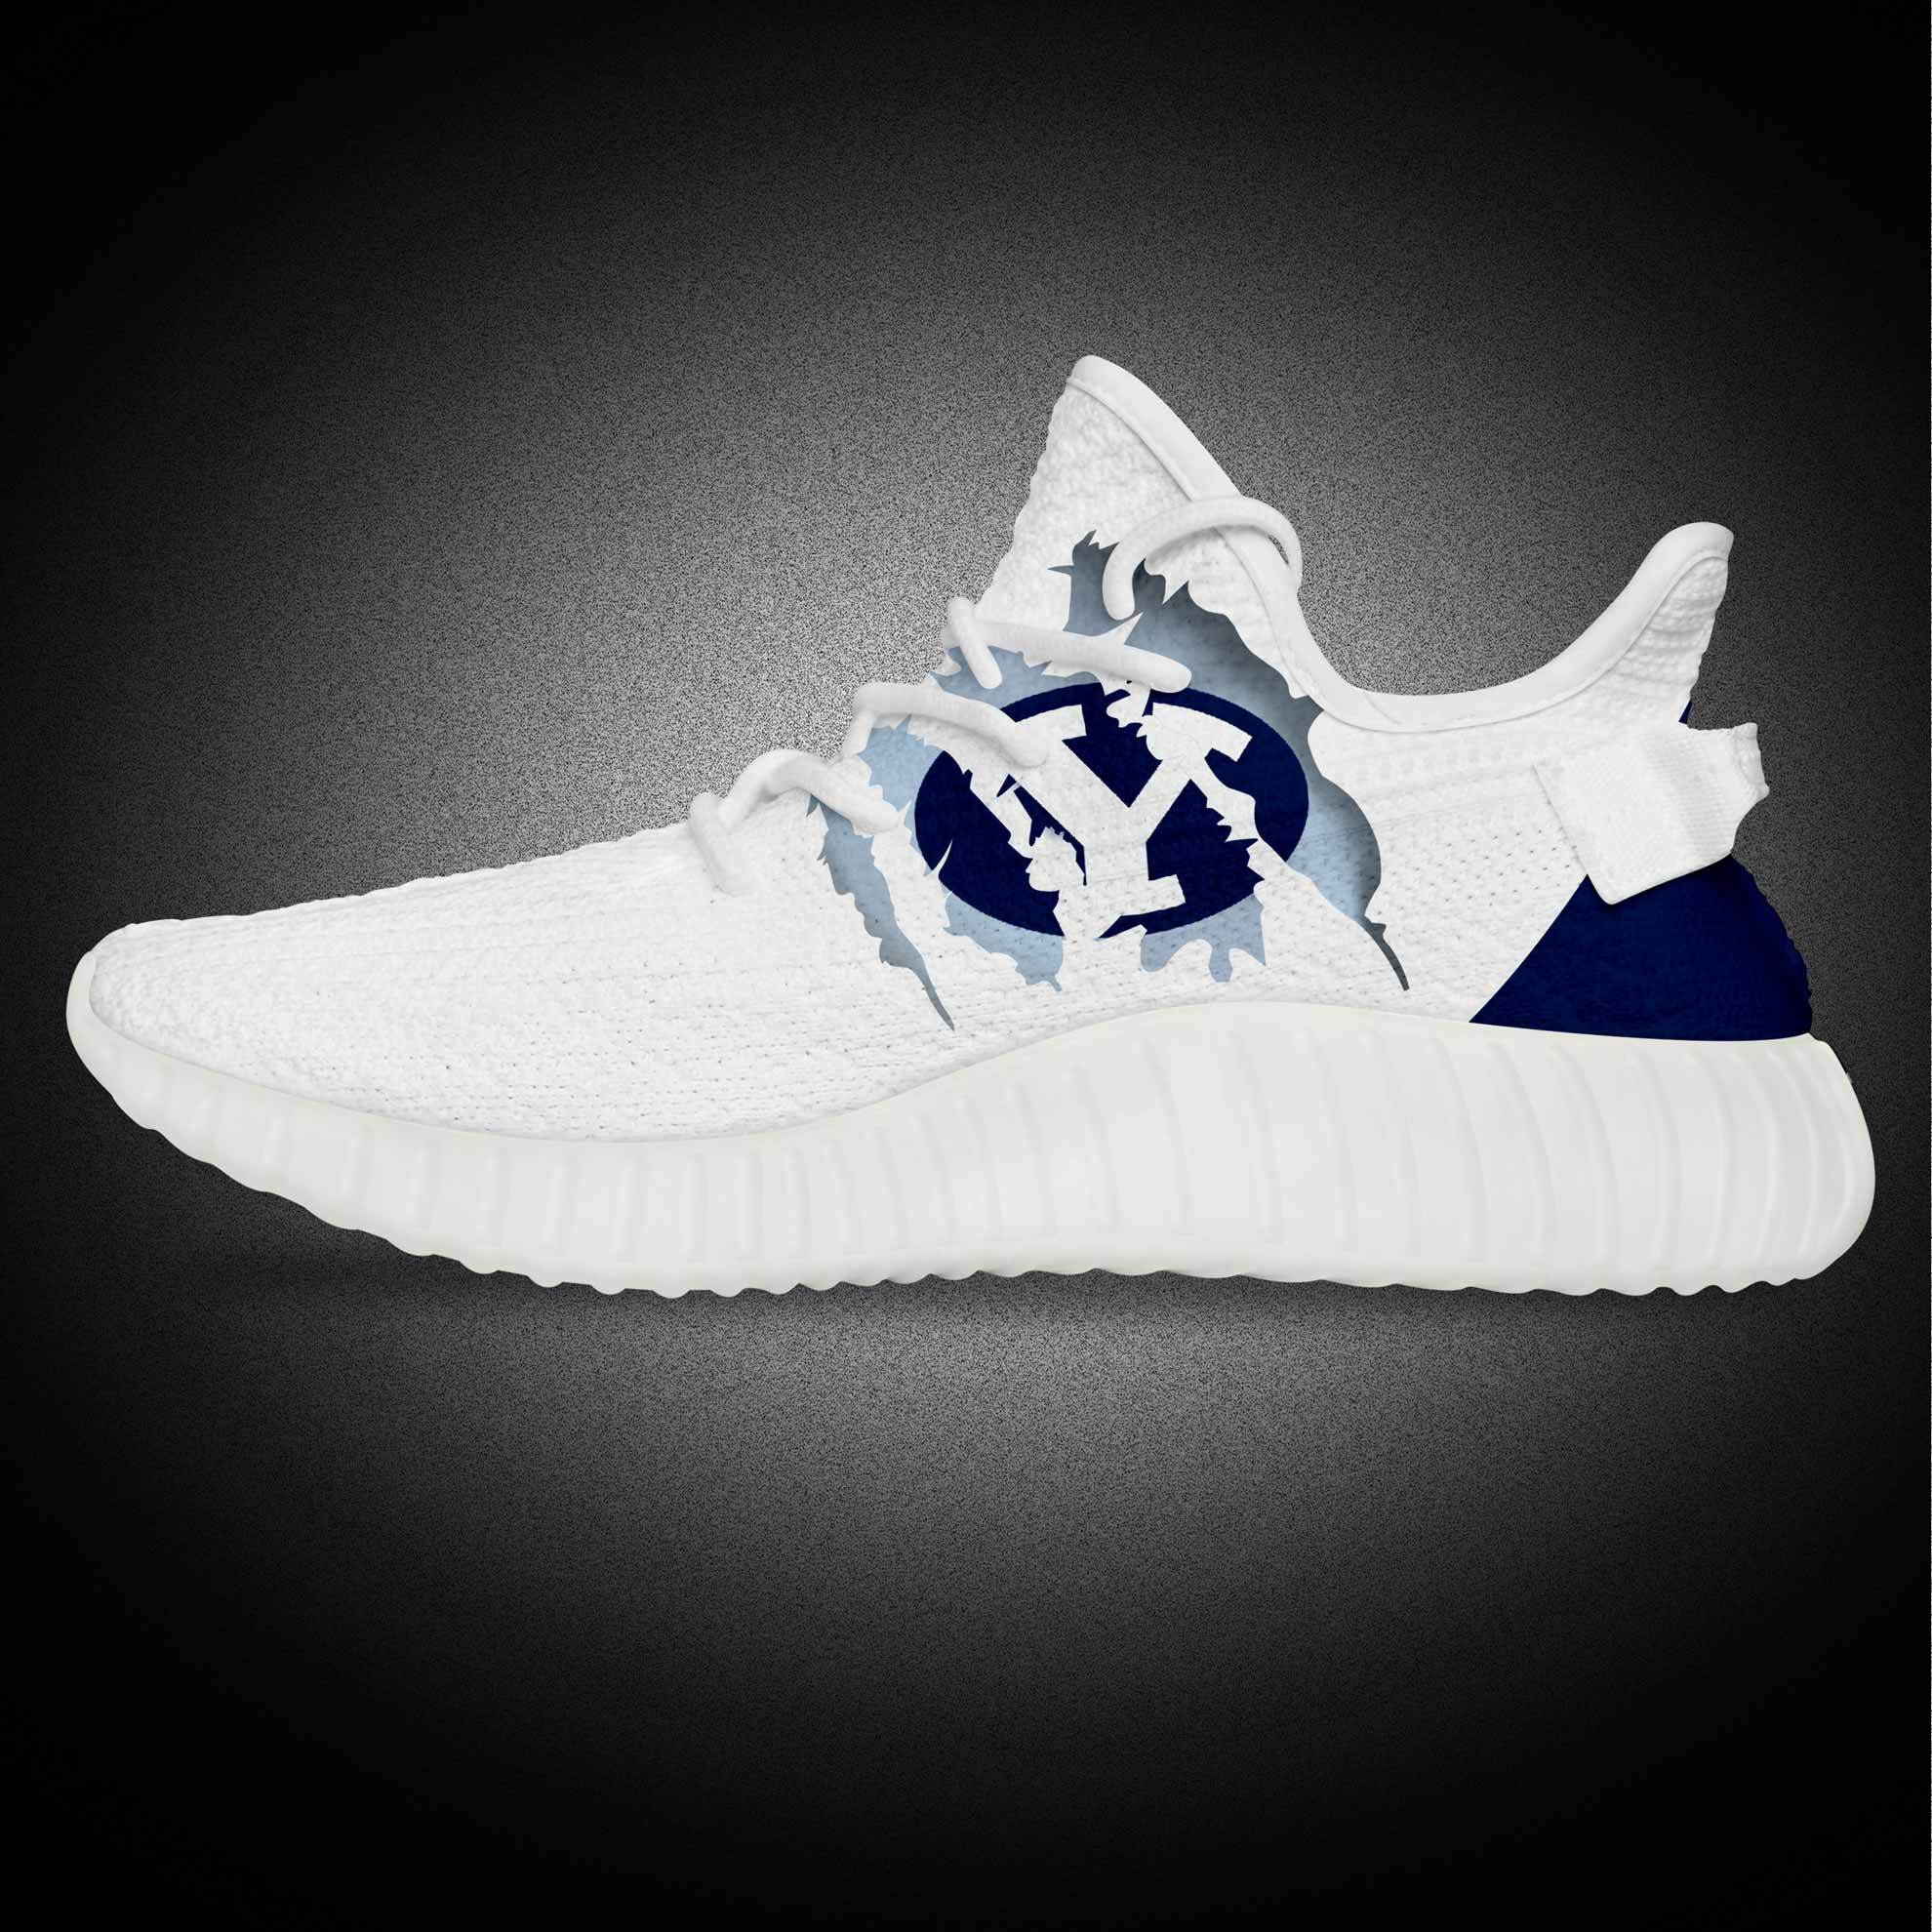 Most Popular Creative Birthday Gift Yeezy Shoes Customized for Boyfriend